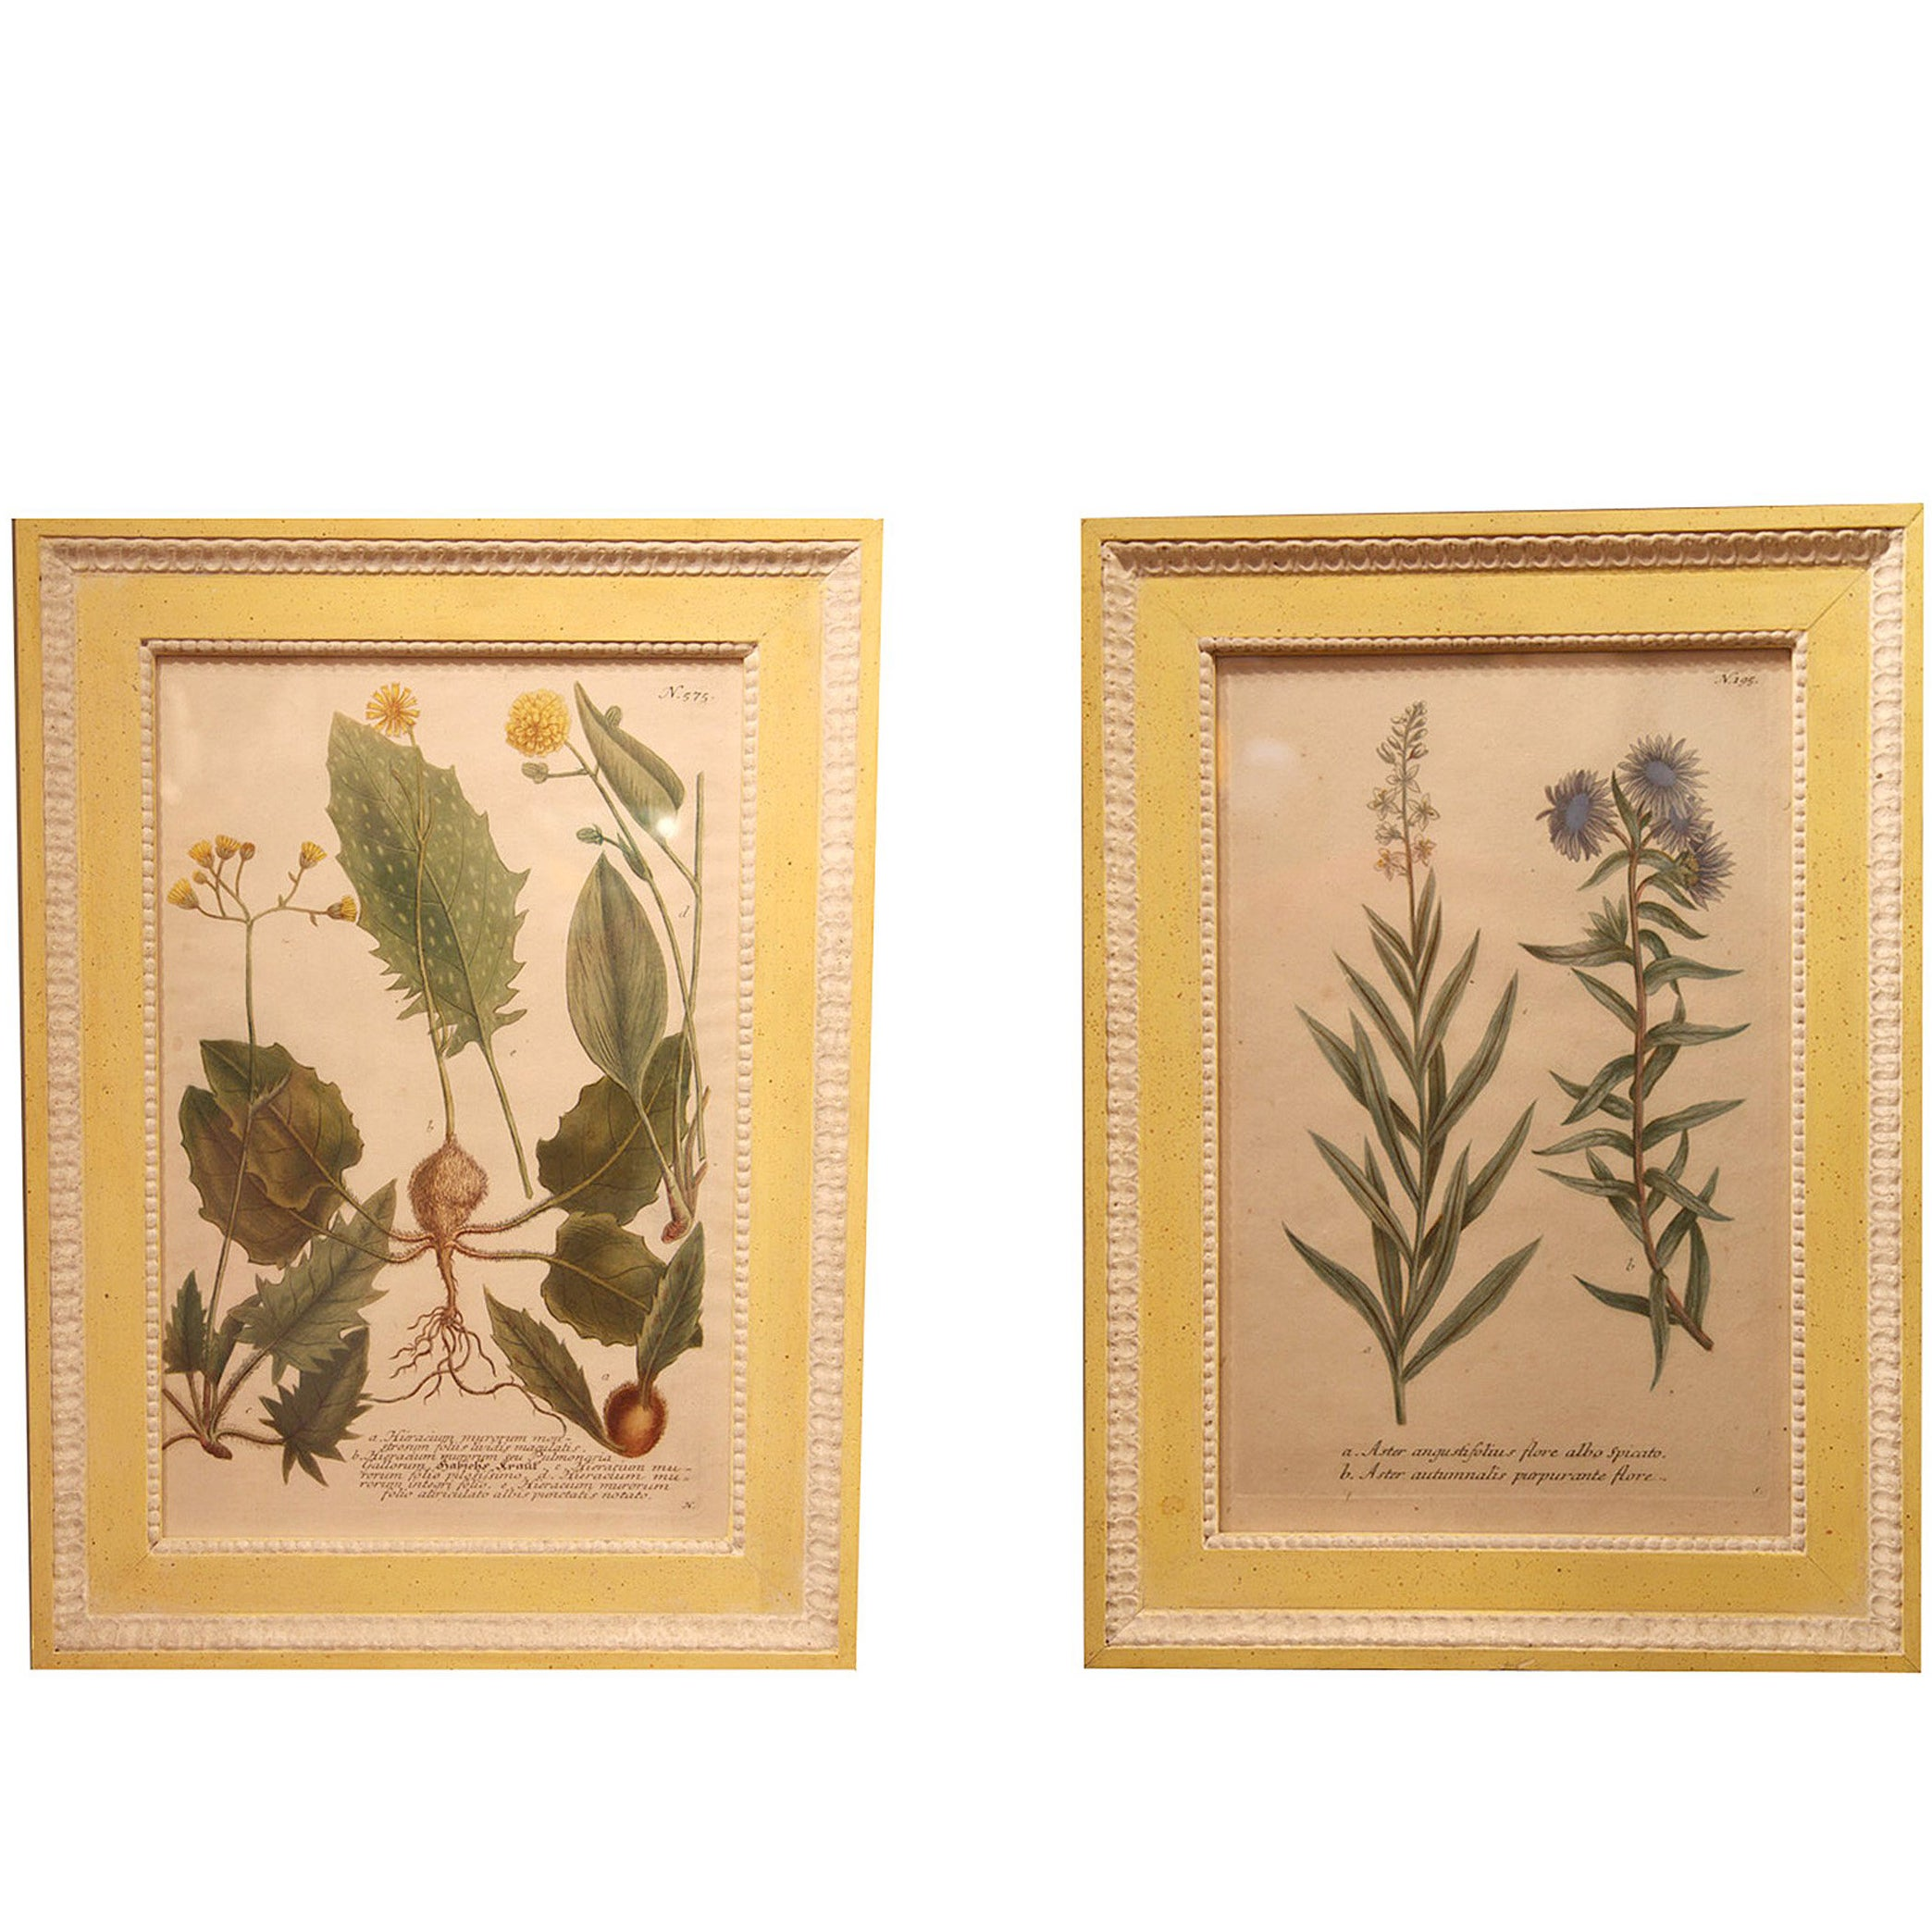 Set of 12 18th Century Botanical Prints by Georg Dionysius Ehret